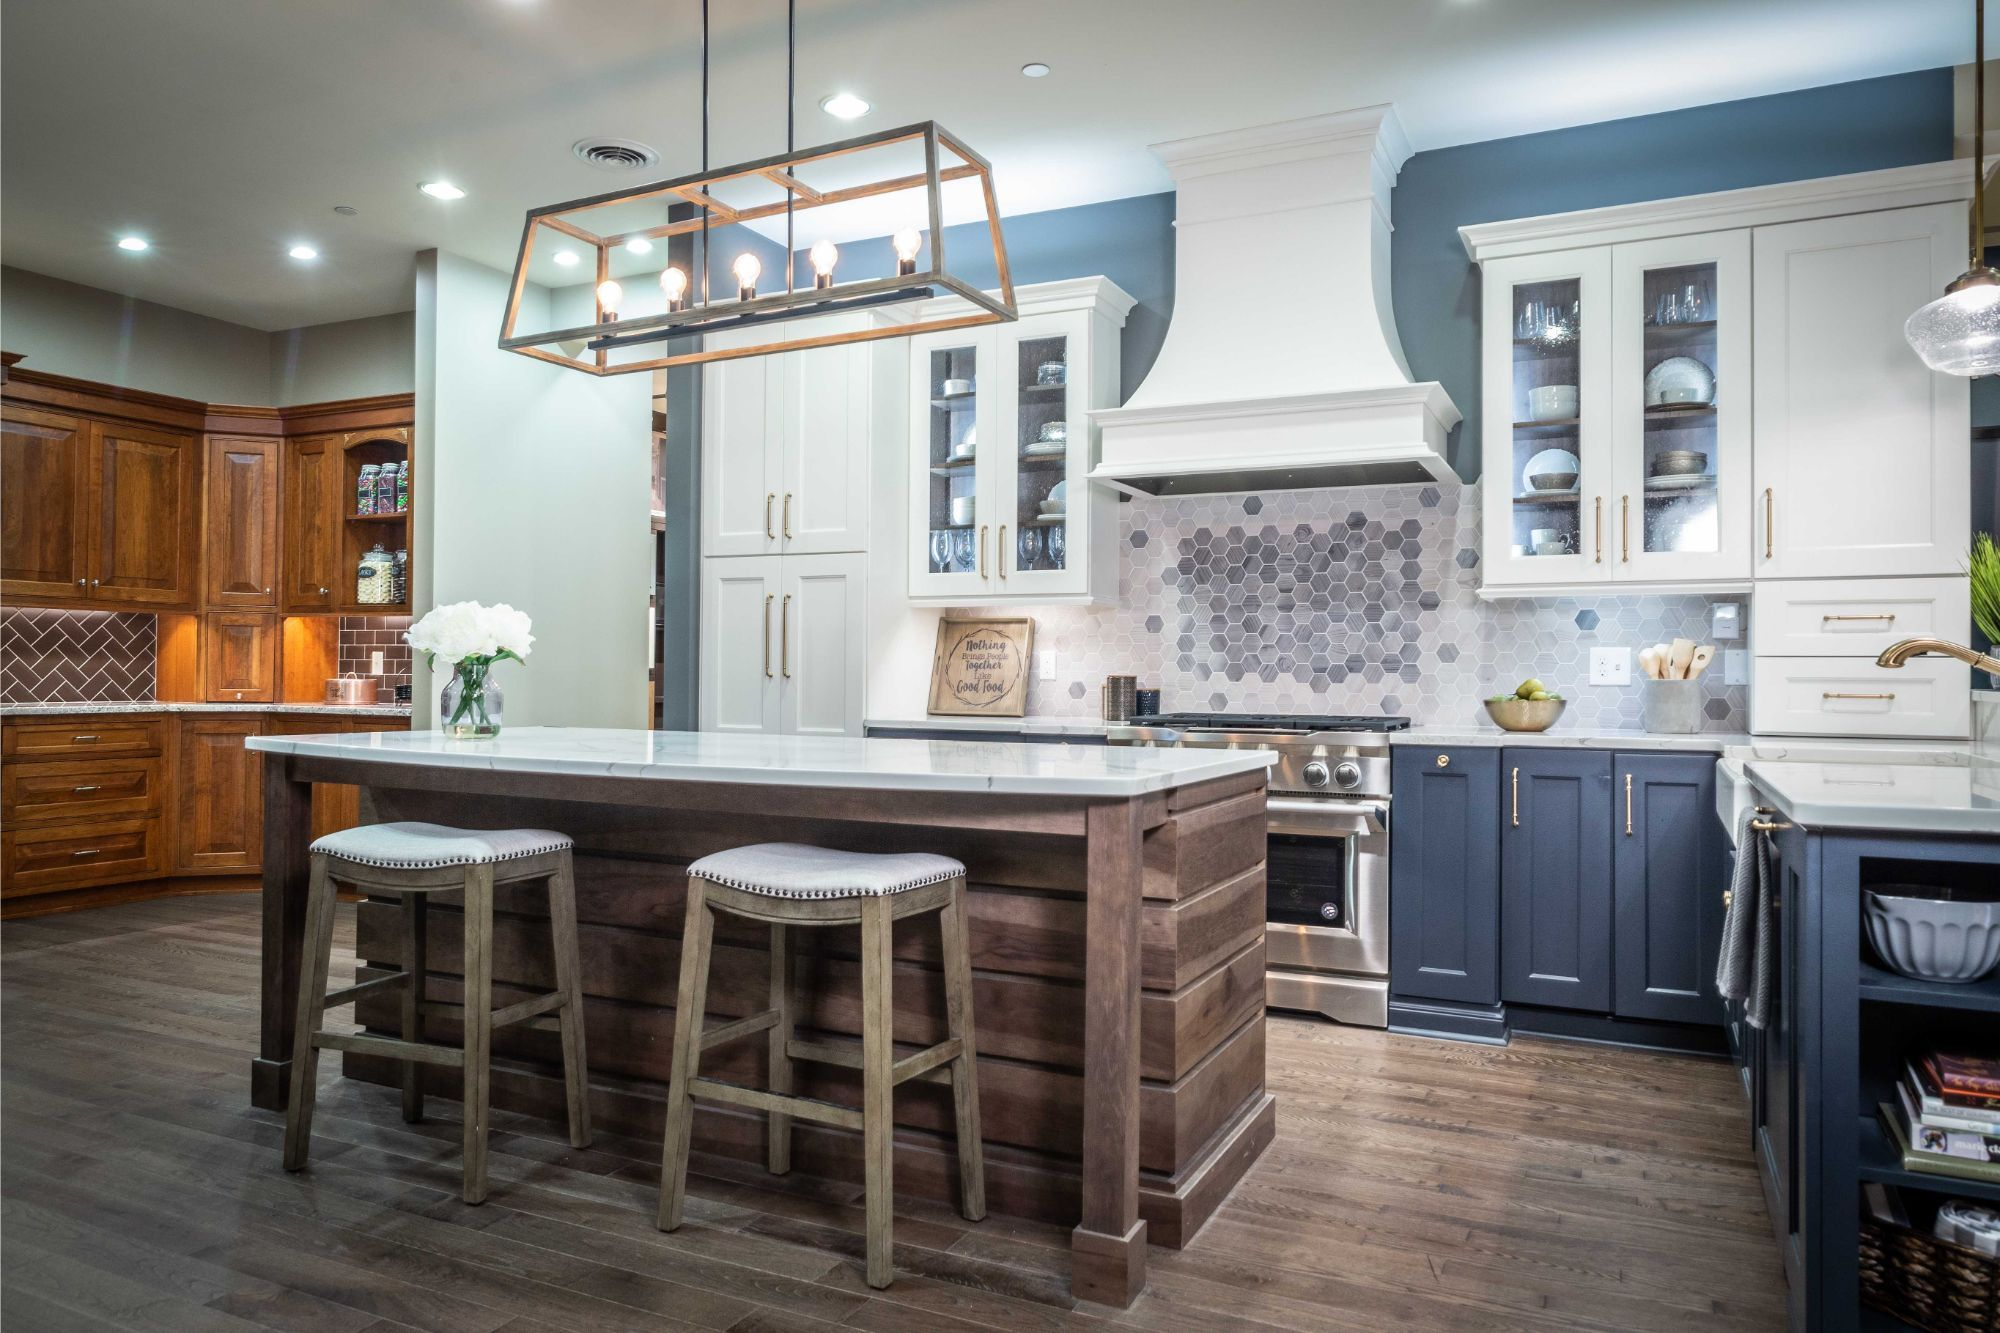 Kitchen Cabinets Suppliers Best Rochester New York Kitchen And Bath Remodeling The Inde Kitchen Remodel Design Kitchen Remodel Small Kitchen Remodel